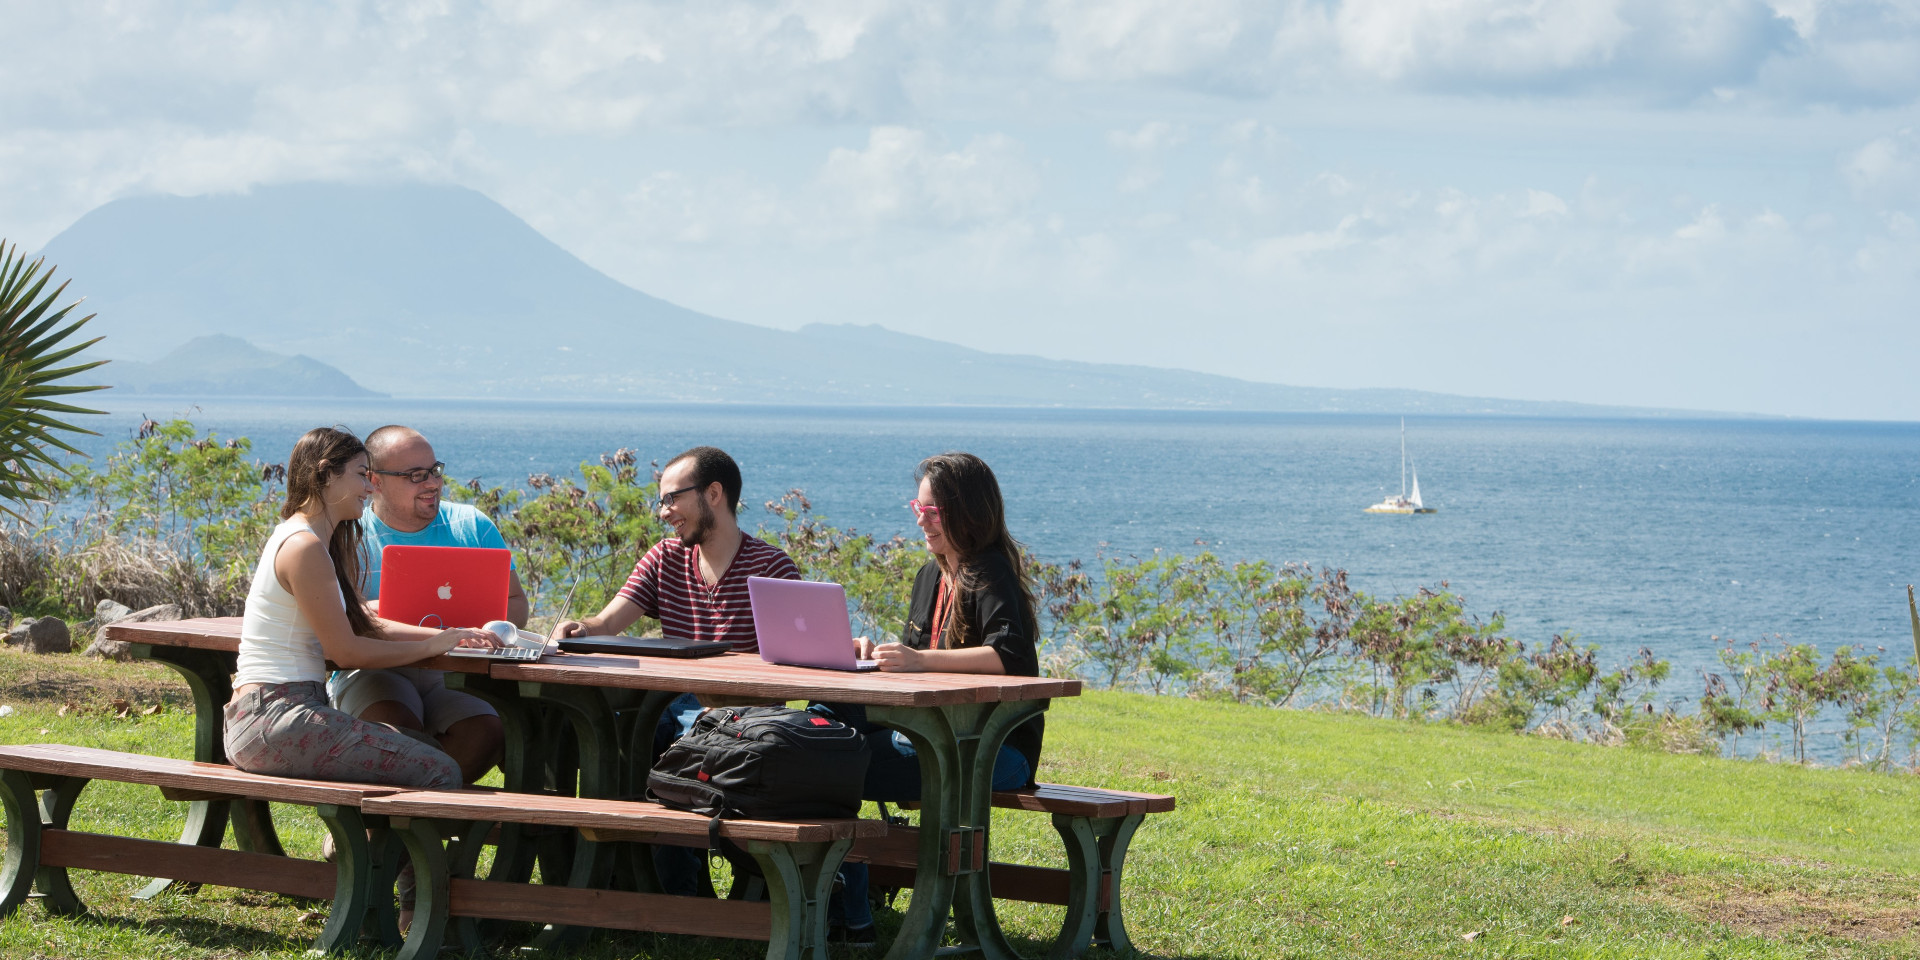 UMHS St Kitts Students with Mountain in Background